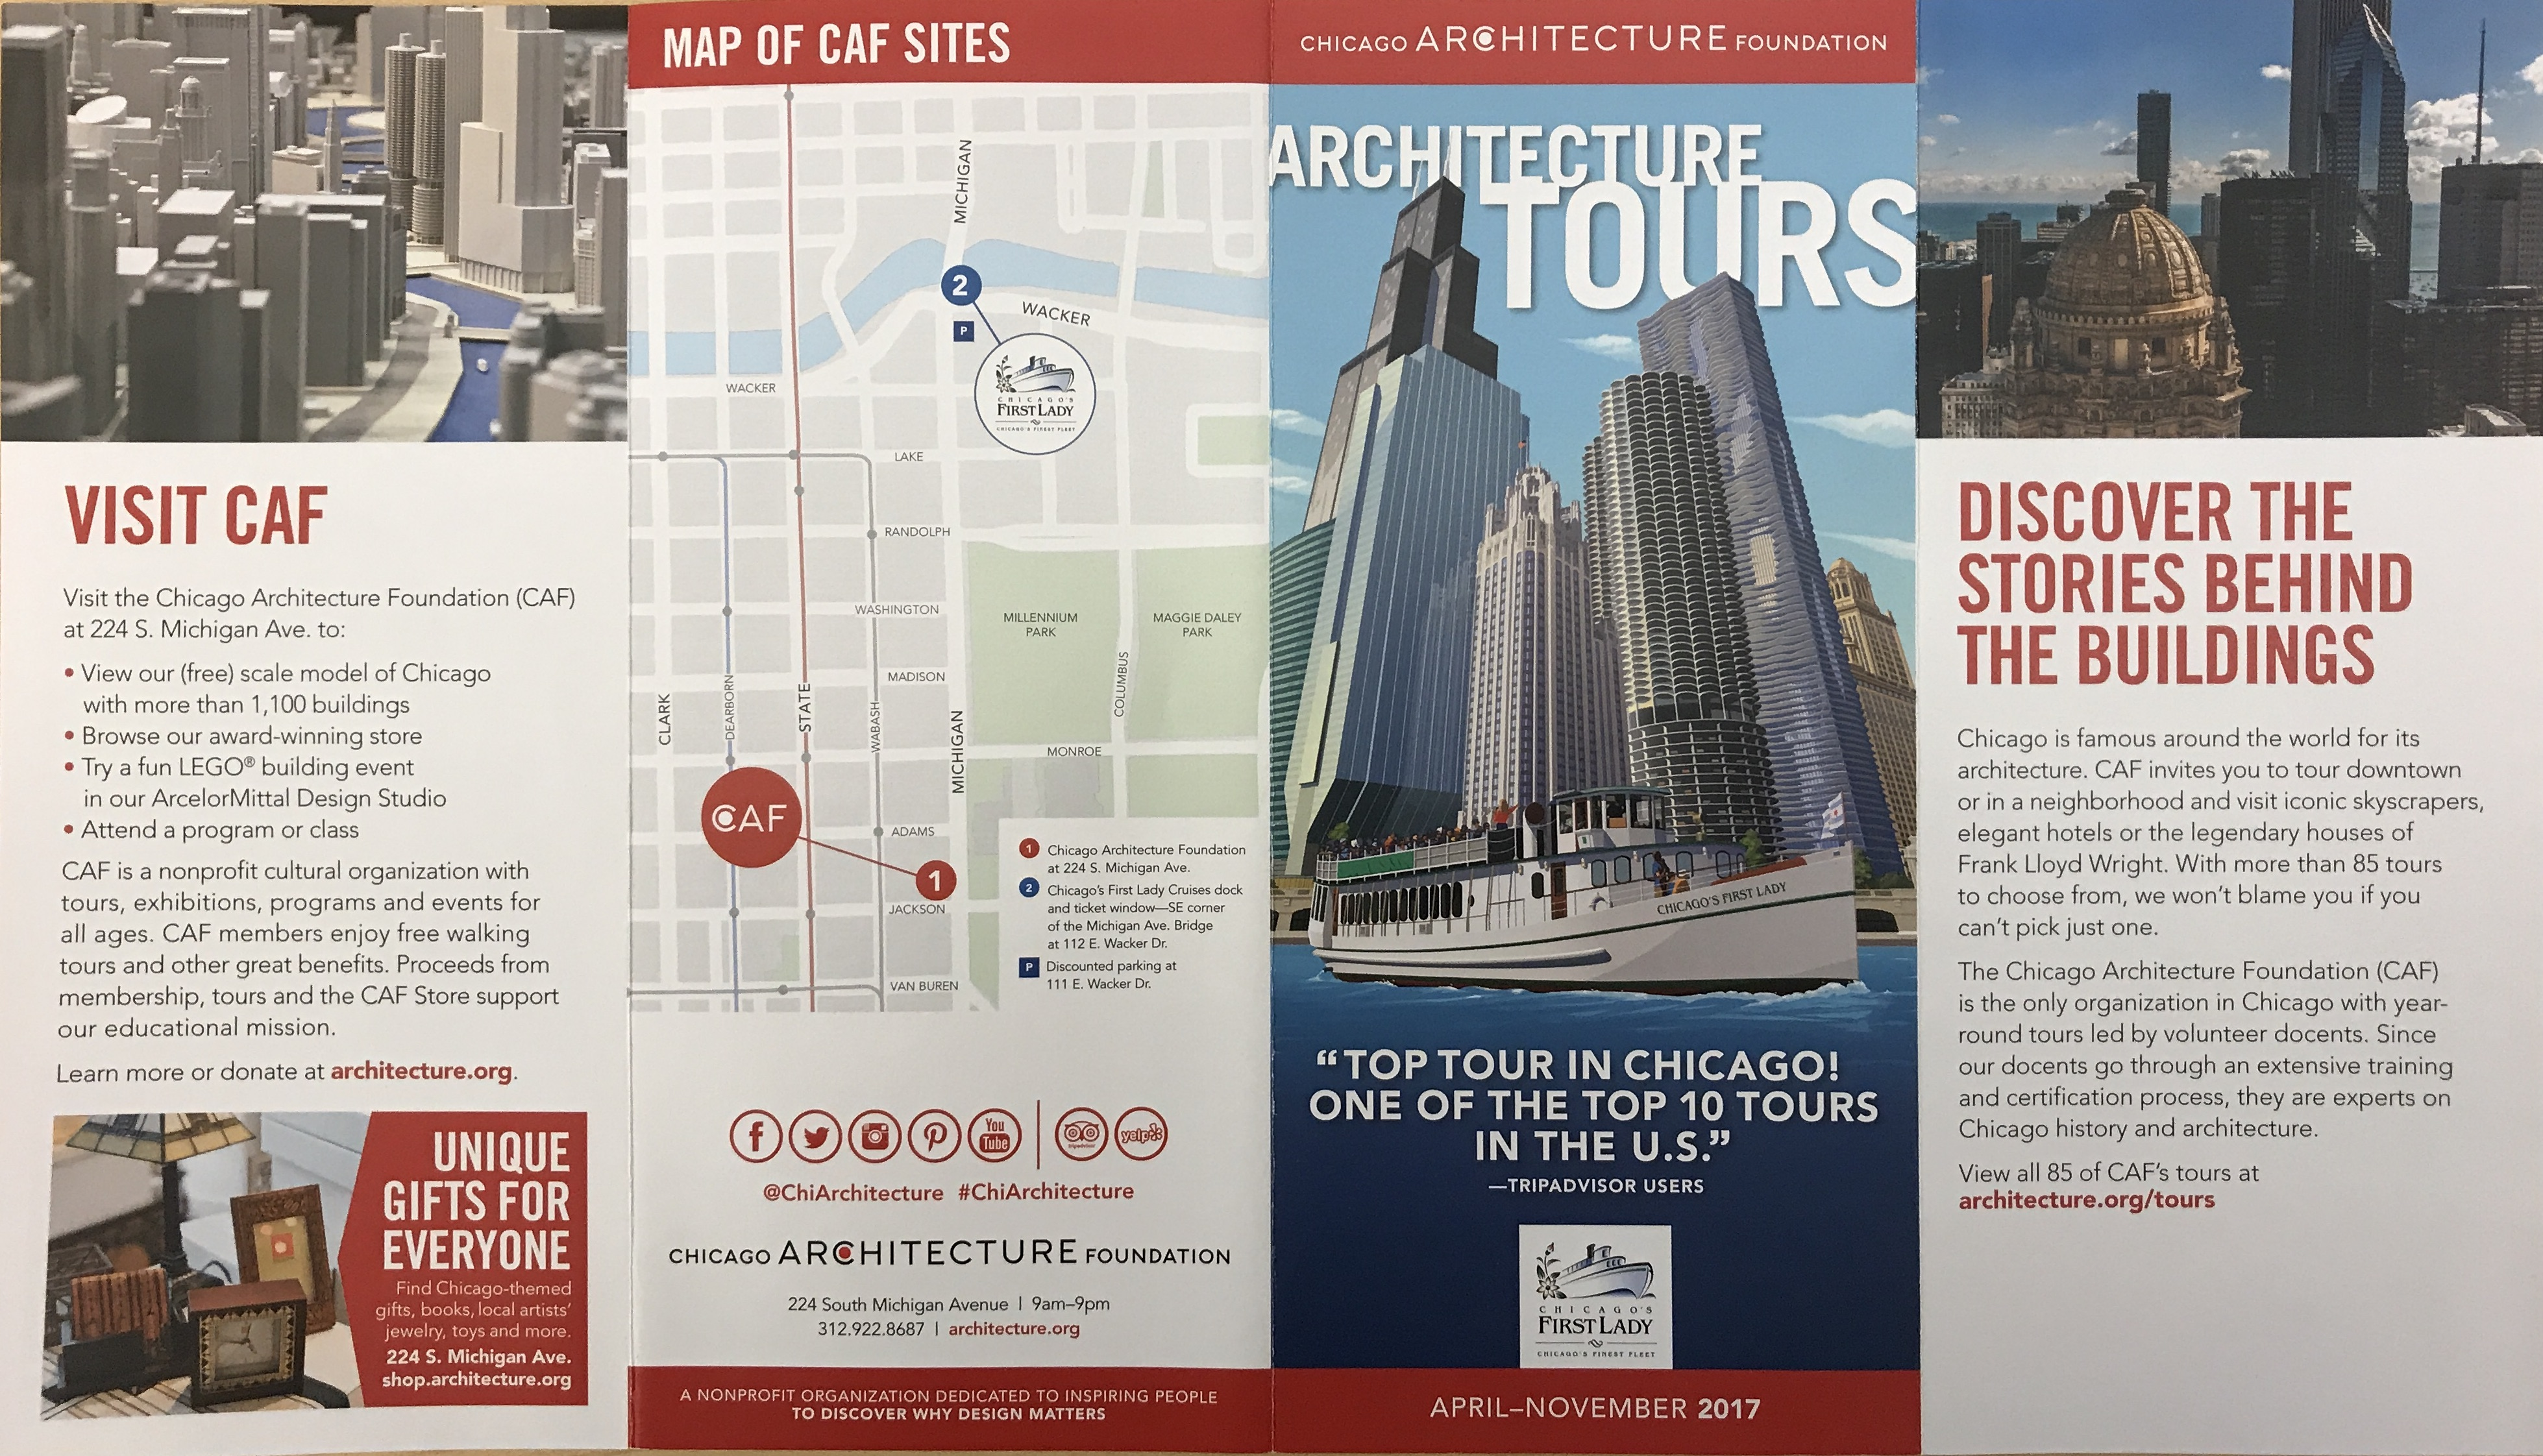 Chicago architecture foundation tours